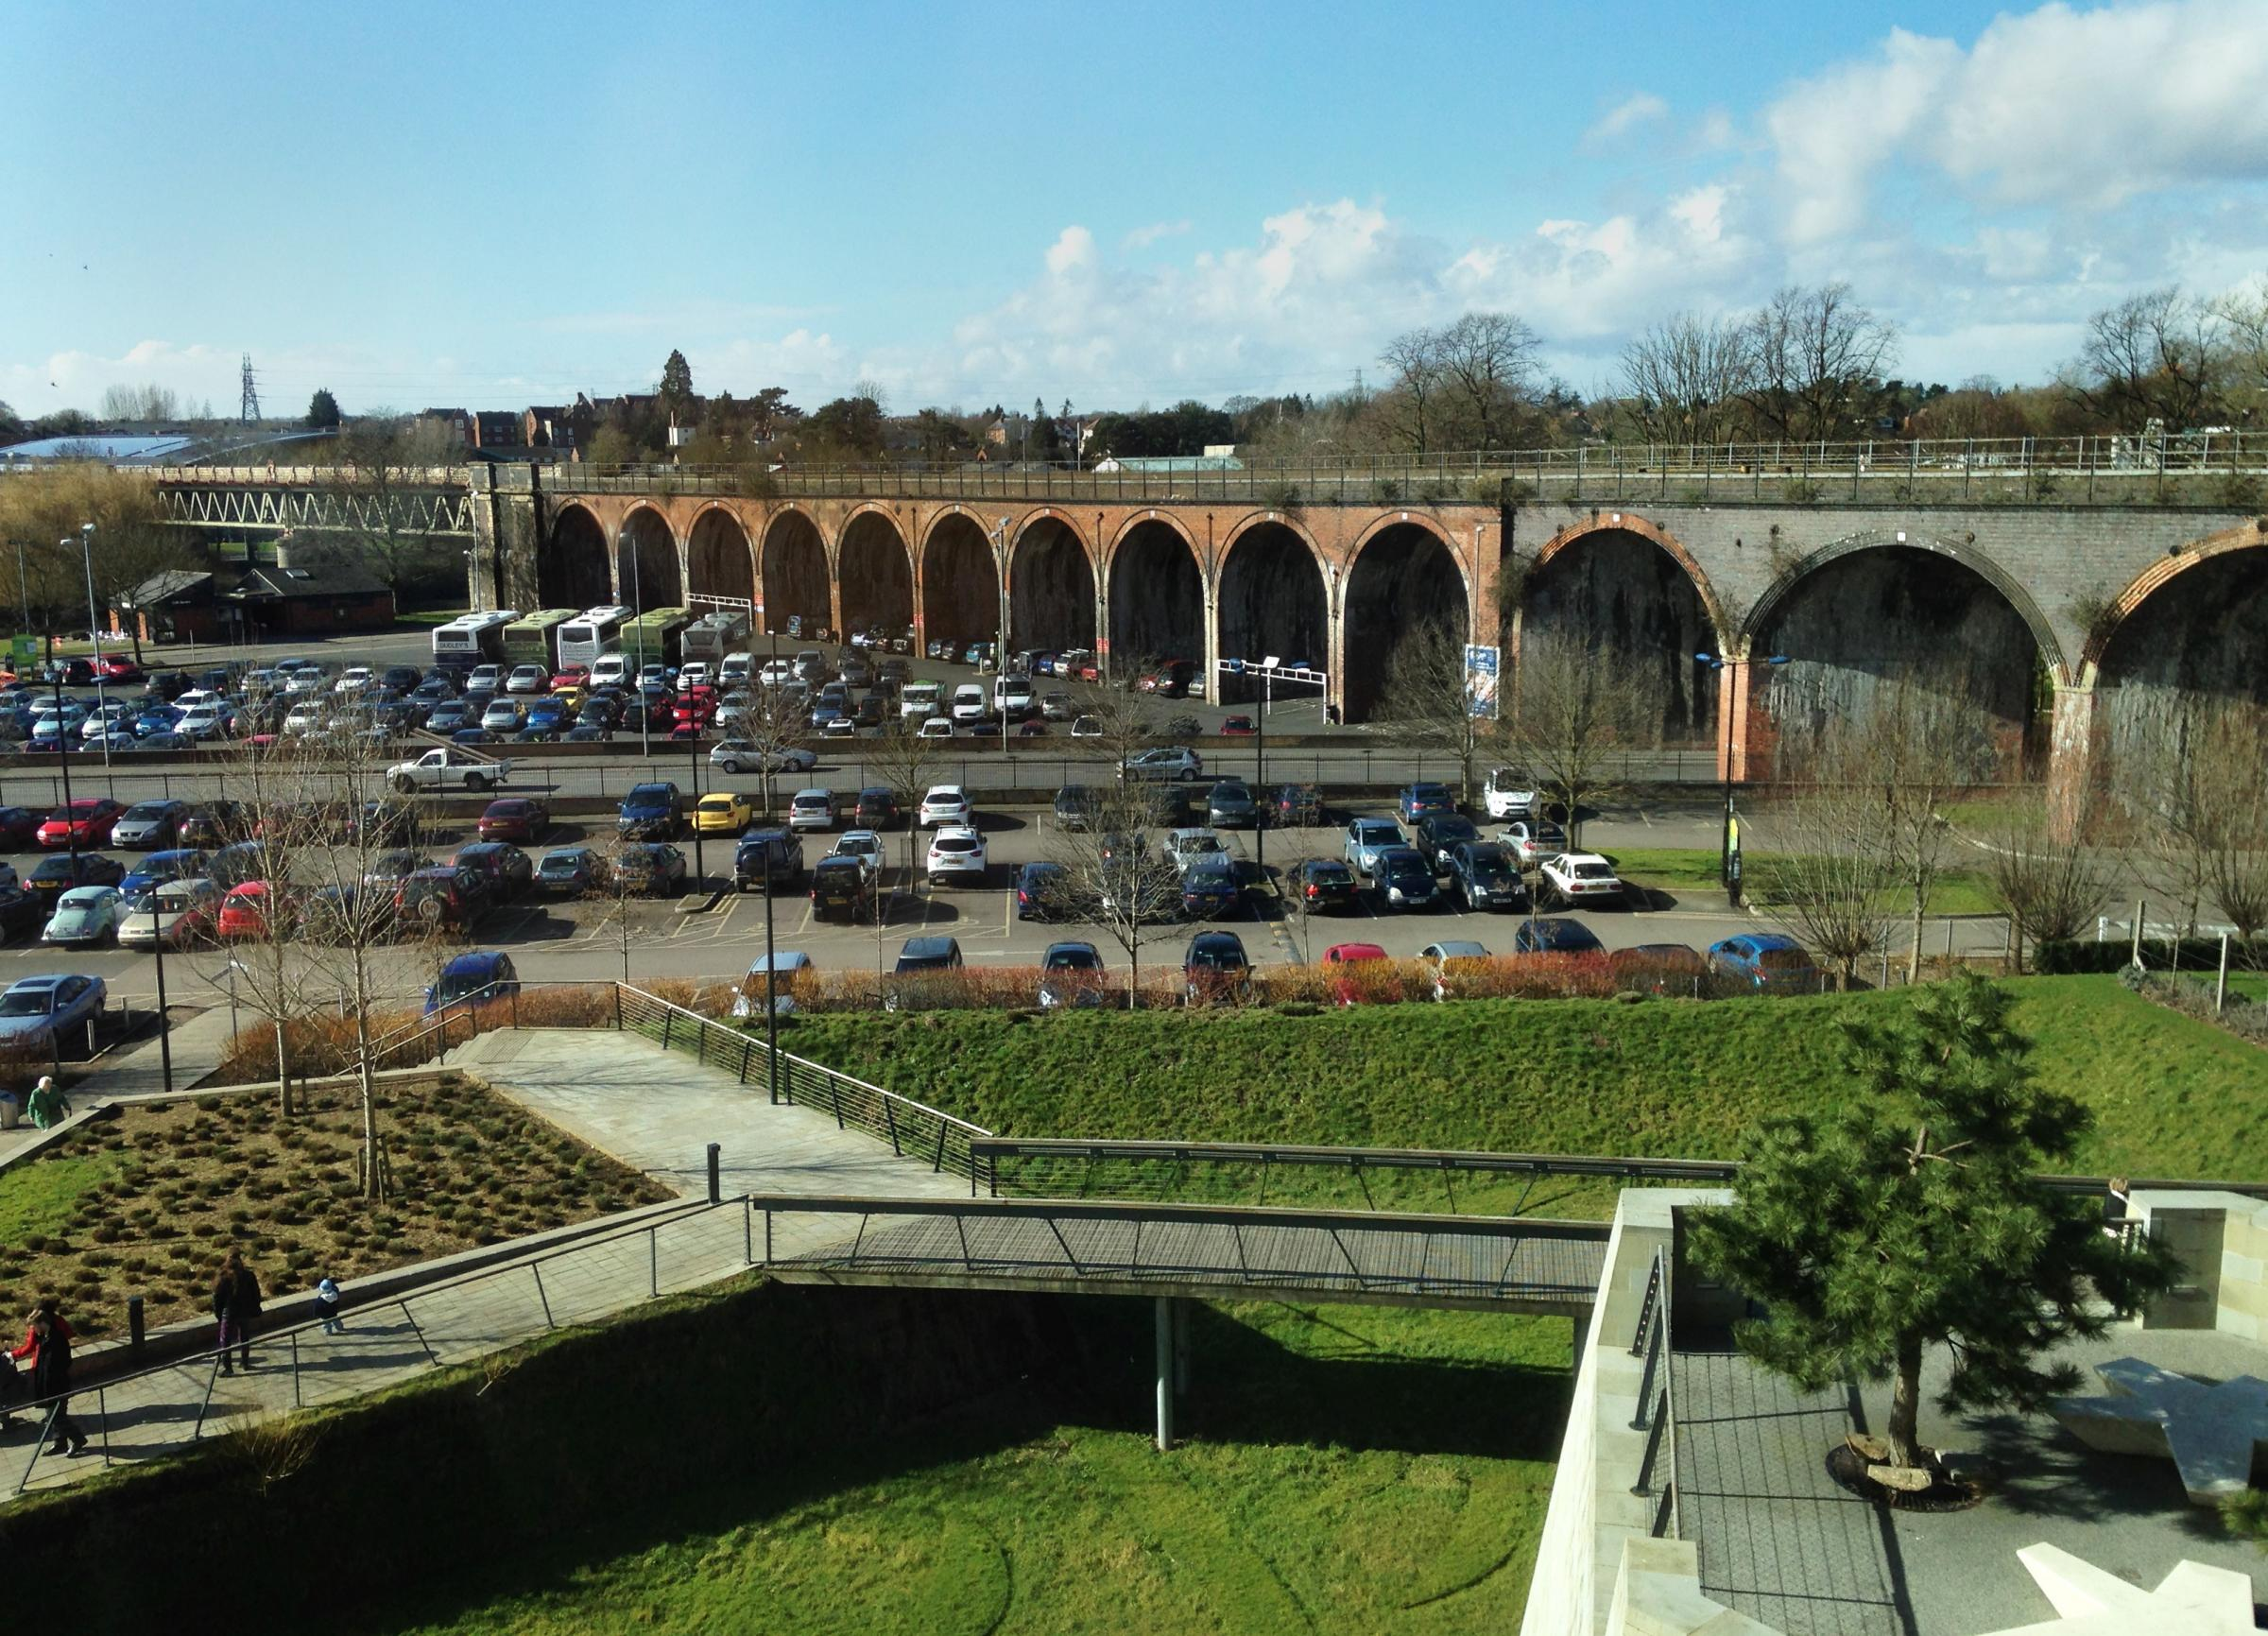 View of the Viaduct in Worcester from the Hive near where the sexual assualt took place.